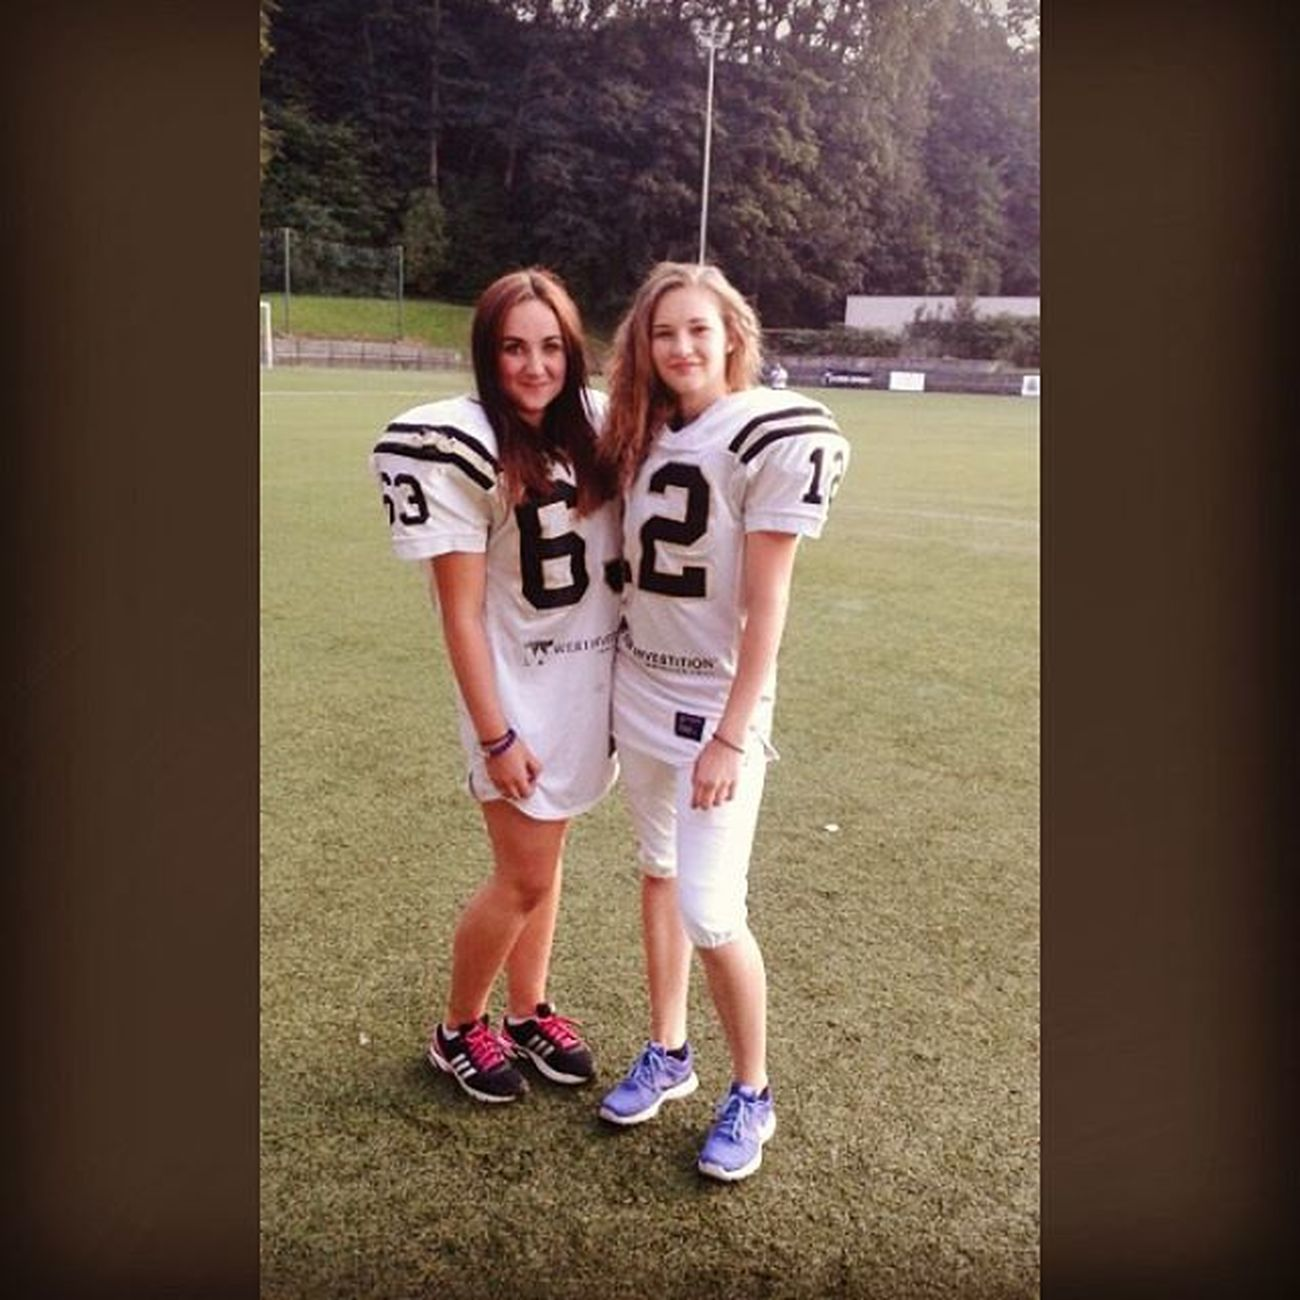 Training 👌💪 Americanfootball Americanfootballgirls Training Czechgirls